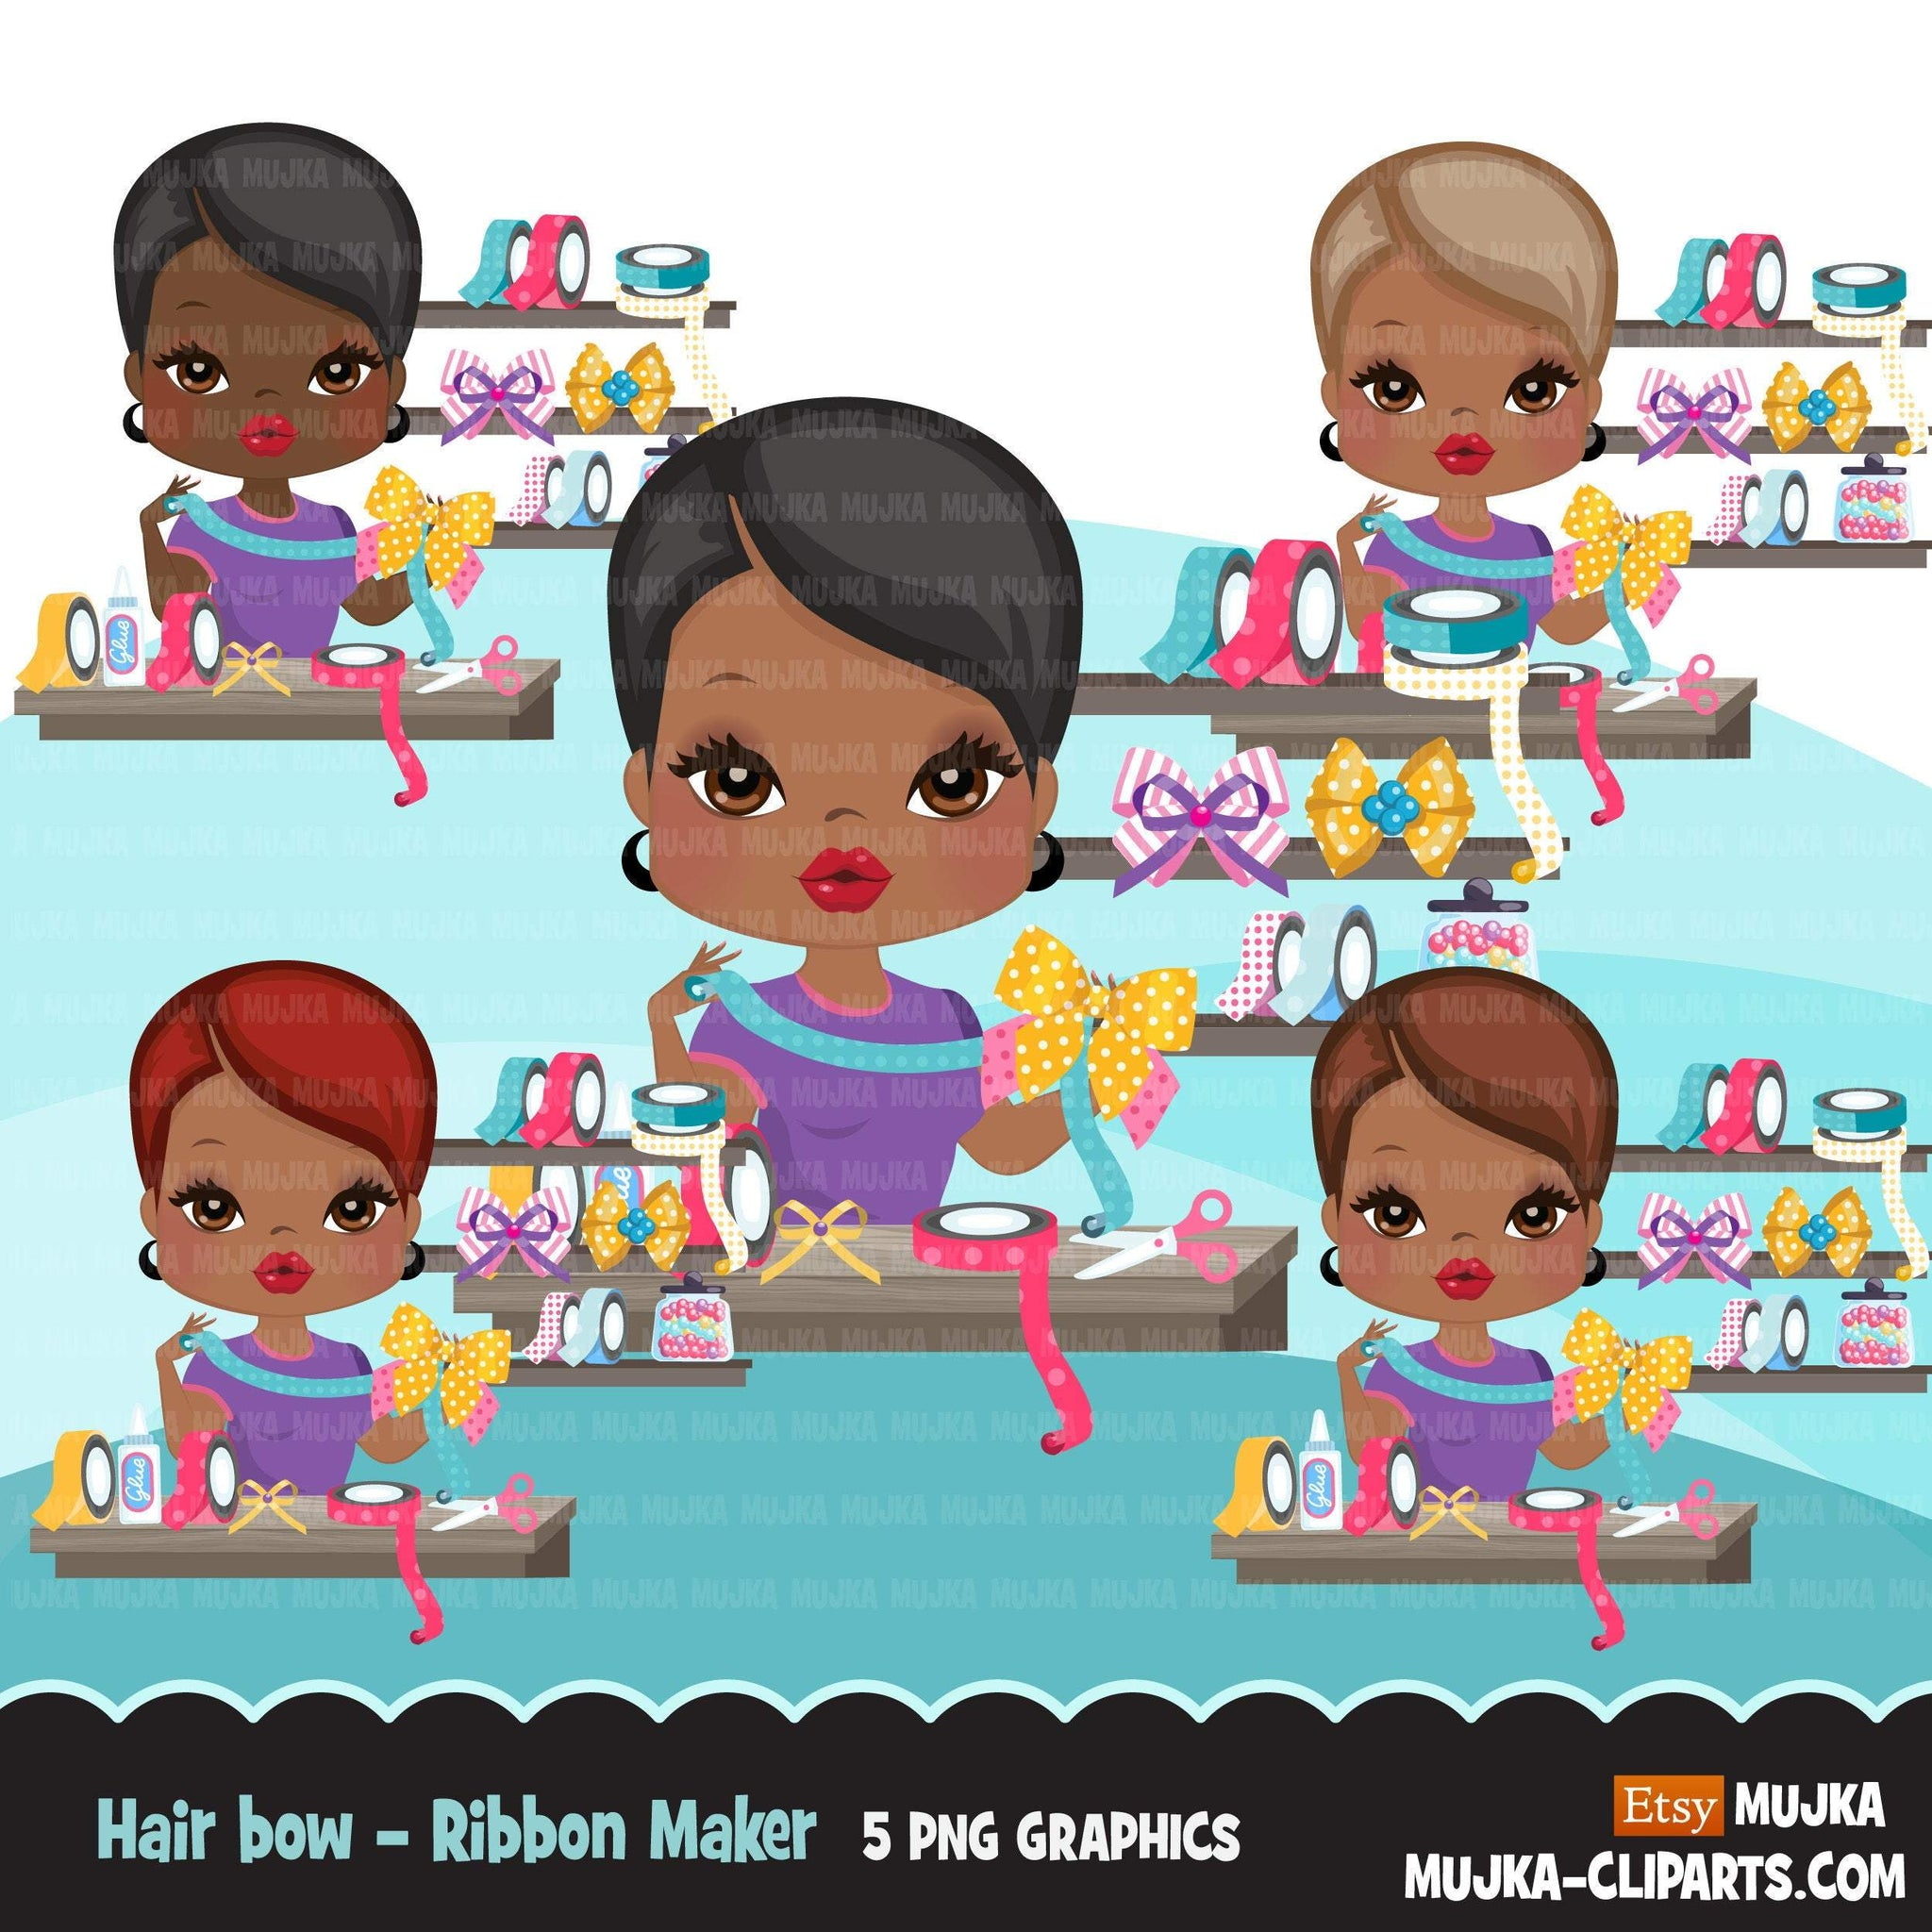 Afro Woman hair bow maker avatar clipart with ribbons, print and cut, bow maker boss black girl clip art